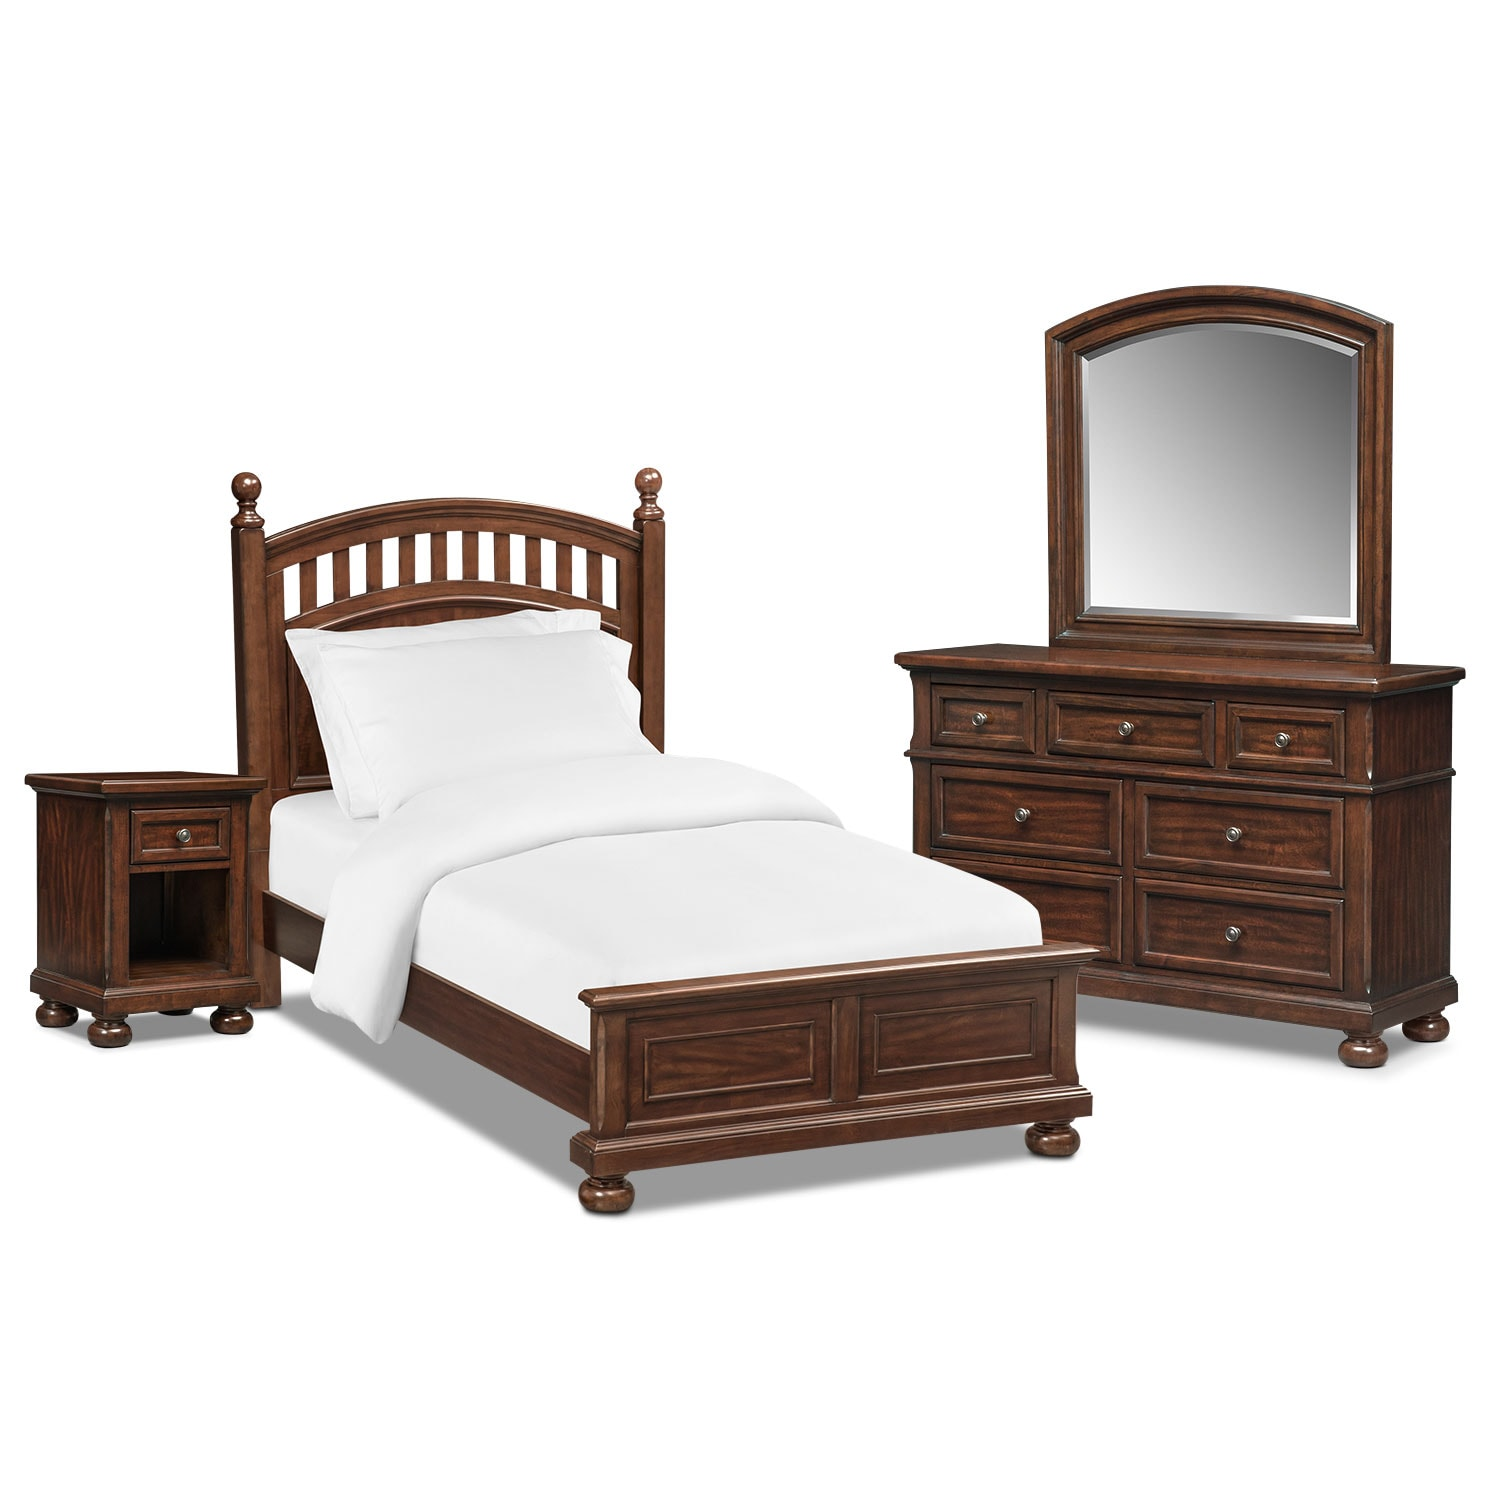 Hanover youth 6 piece twin poster bedroom set cherry for Bedroom 6 piece set